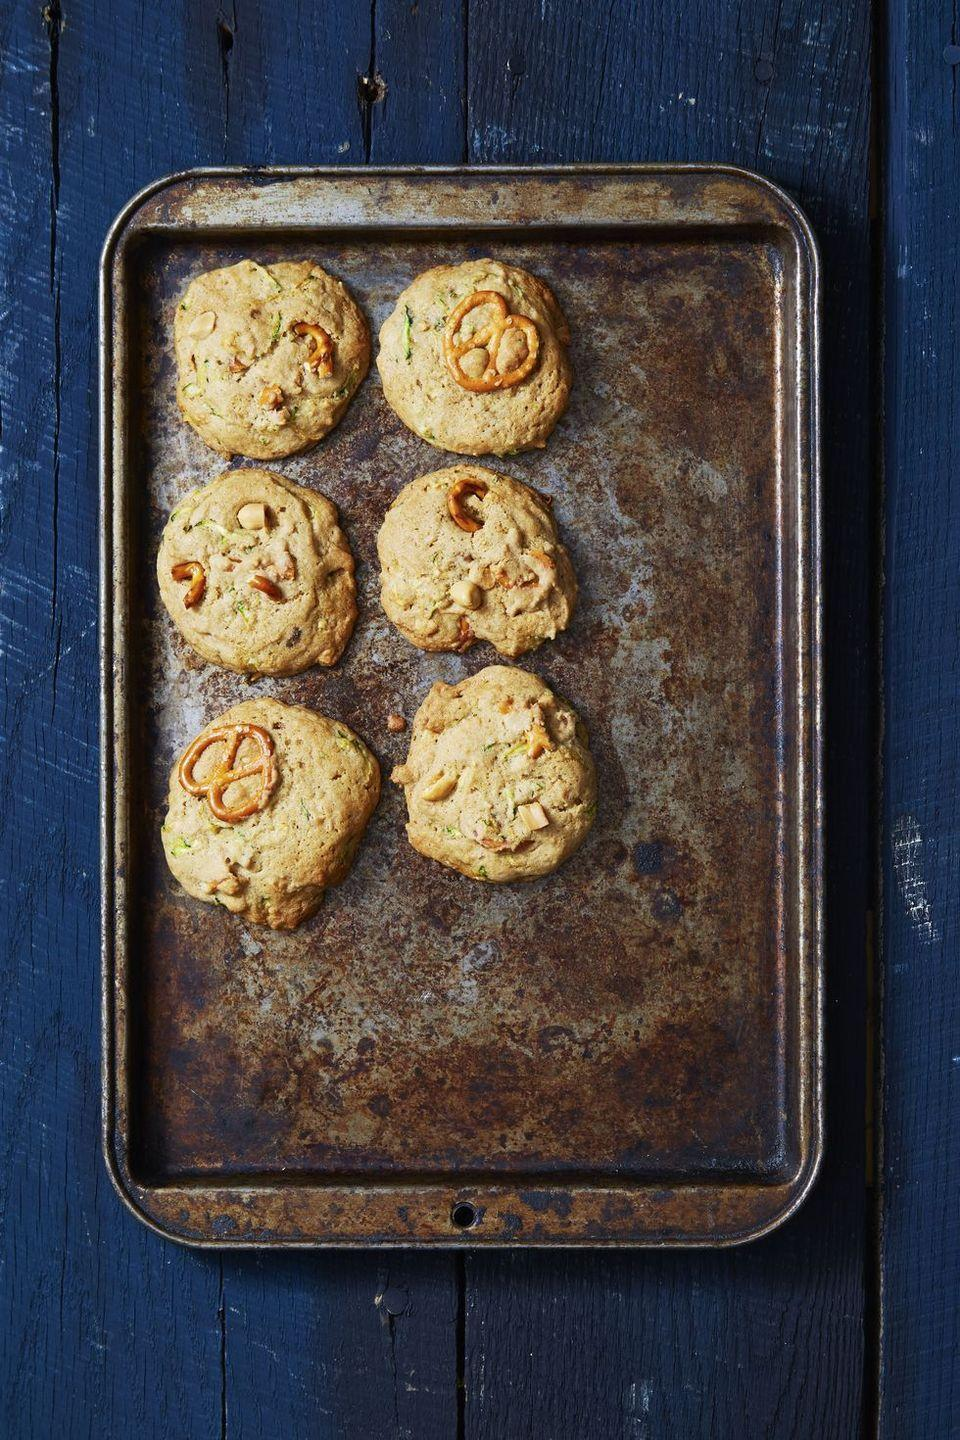 "<p>These easy cookies contain a full cup of grated zucchini. This totally counts as a serving of vegetables, IMHO.</p><p><em><a href=""https://www.goodhousekeeping.com/food-recipes/dessert/a40394/sweet-salty-zucchini-bread-cookies-recipe/"" rel=""nofollow noopener"" target=""_blank"" data-ylk=""slk:Get the recipe for Sweet & Salty Zucchini Bread Cookies »"" class=""link rapid-noclick-resp"">Get the recipe for Sweet & Salty Zucchini Bread Cookies »</a></em></p>"